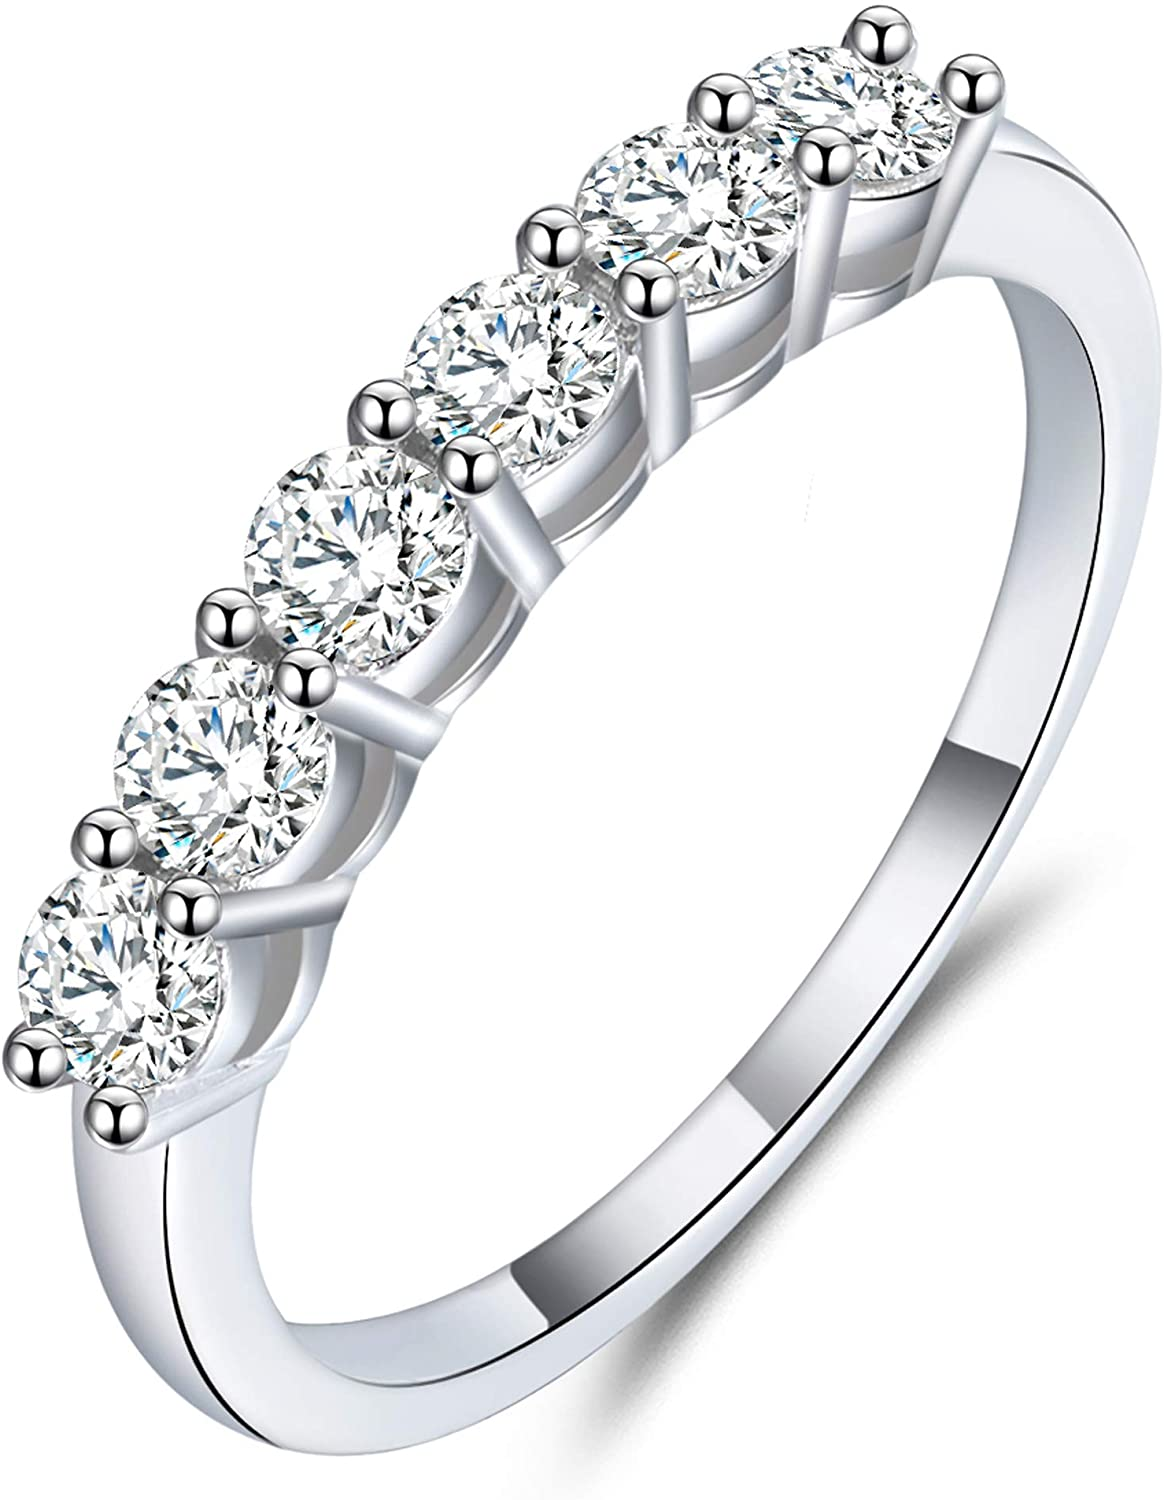 GEM DE LUXE 6 Stone 0.6ct with D Color Platinum Plated Silver Plating 18k White Gold Moissanite Wedding Bands for Women VVS1 Clarity Excellent Cut 2.2mm Band Jewelry Gifts